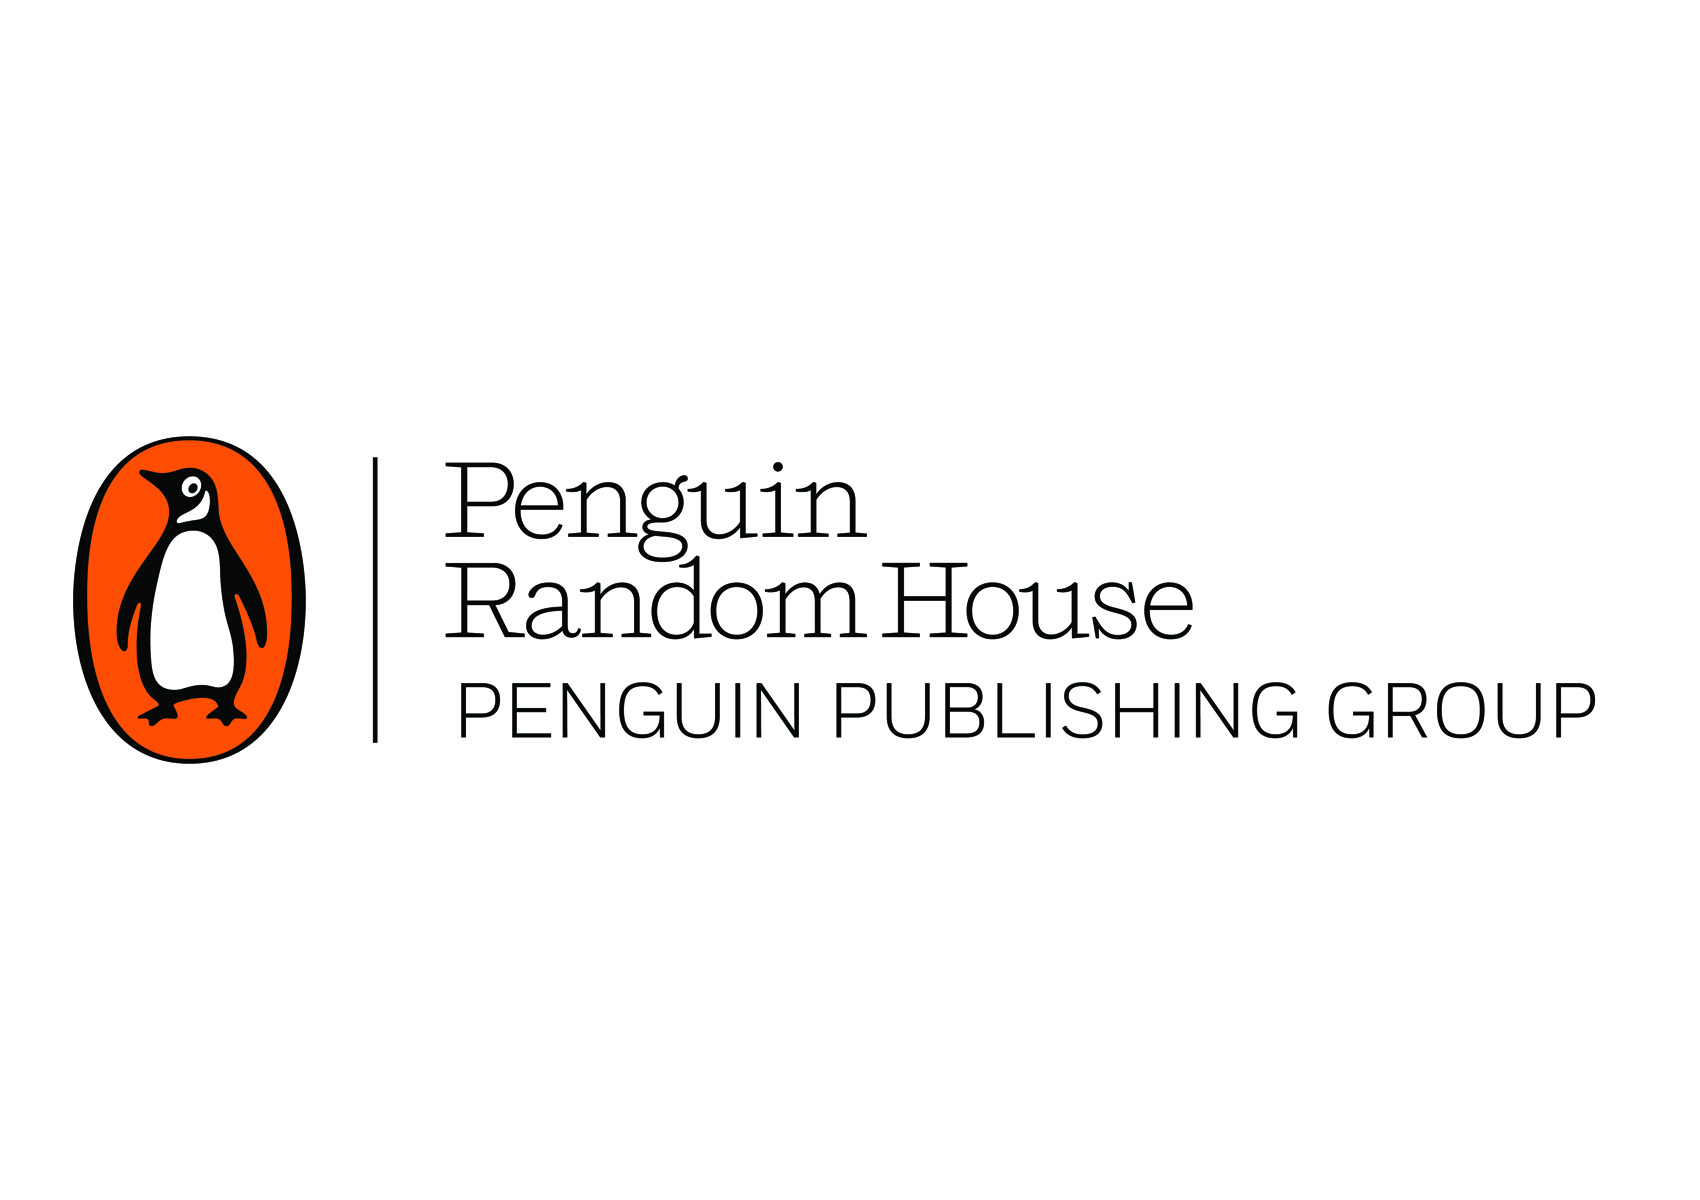 Penguin Publishing Company Logo Pictures To Pin On